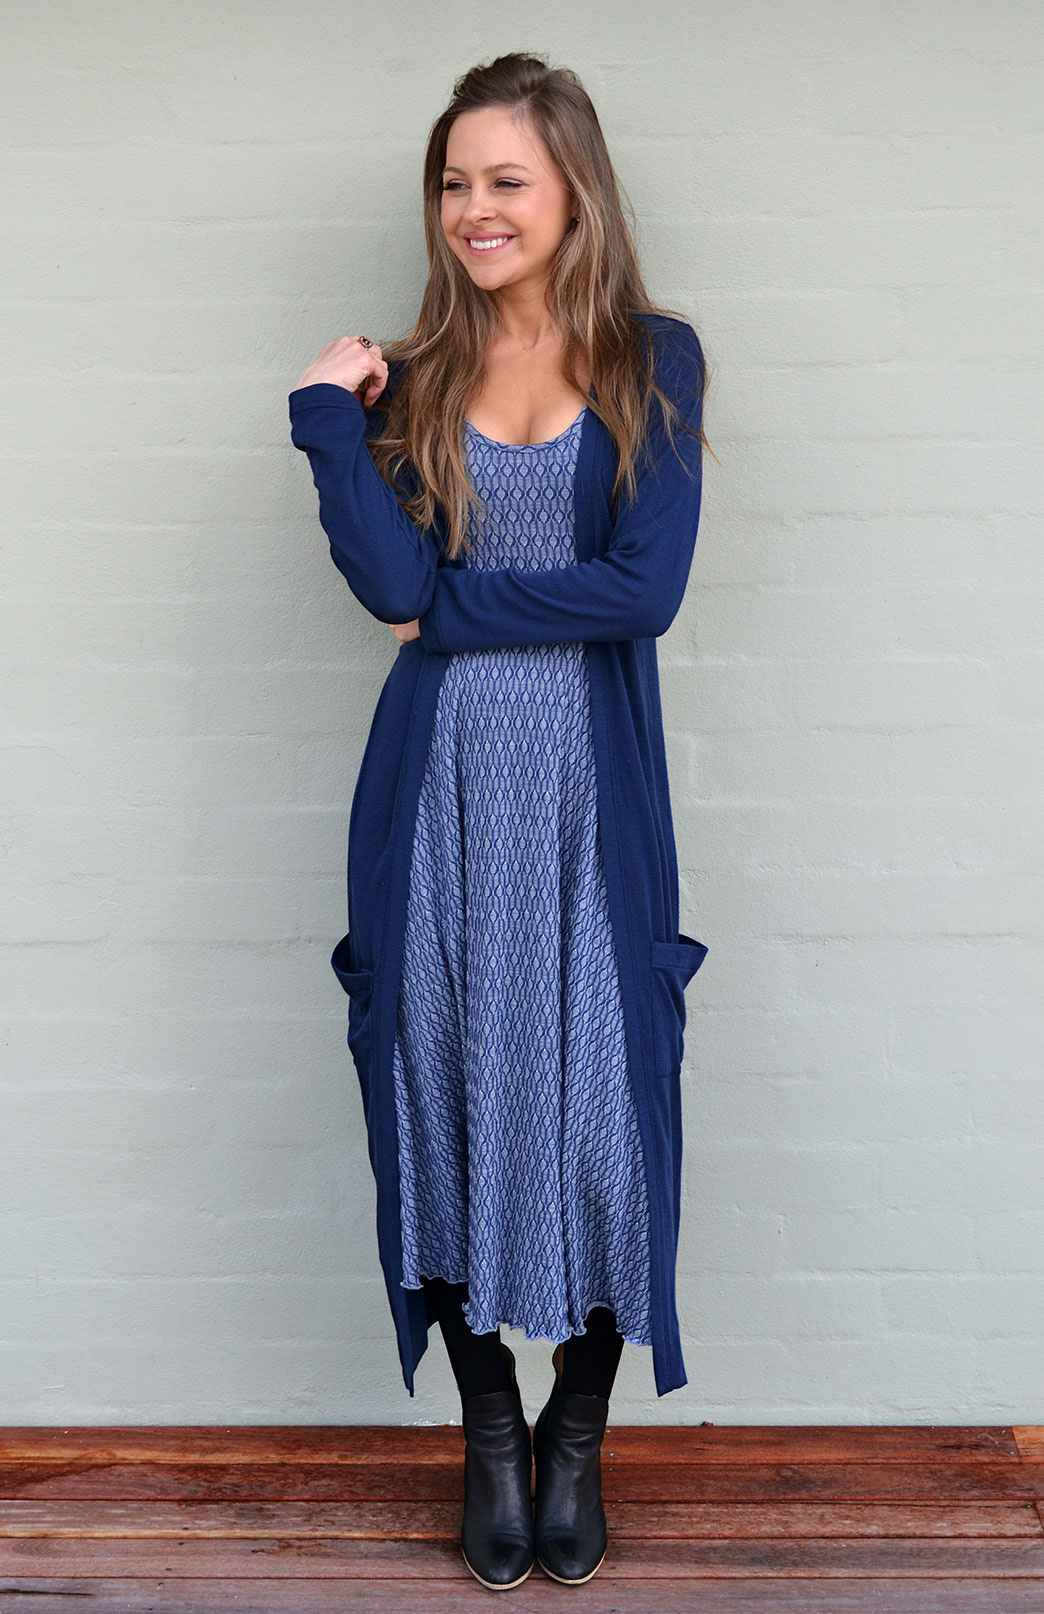 Coatigan - Women's Long Line Dark Blue Indigo Long Sleeved Cardigan with Pockets - Smitten Merino Tasmania Australia